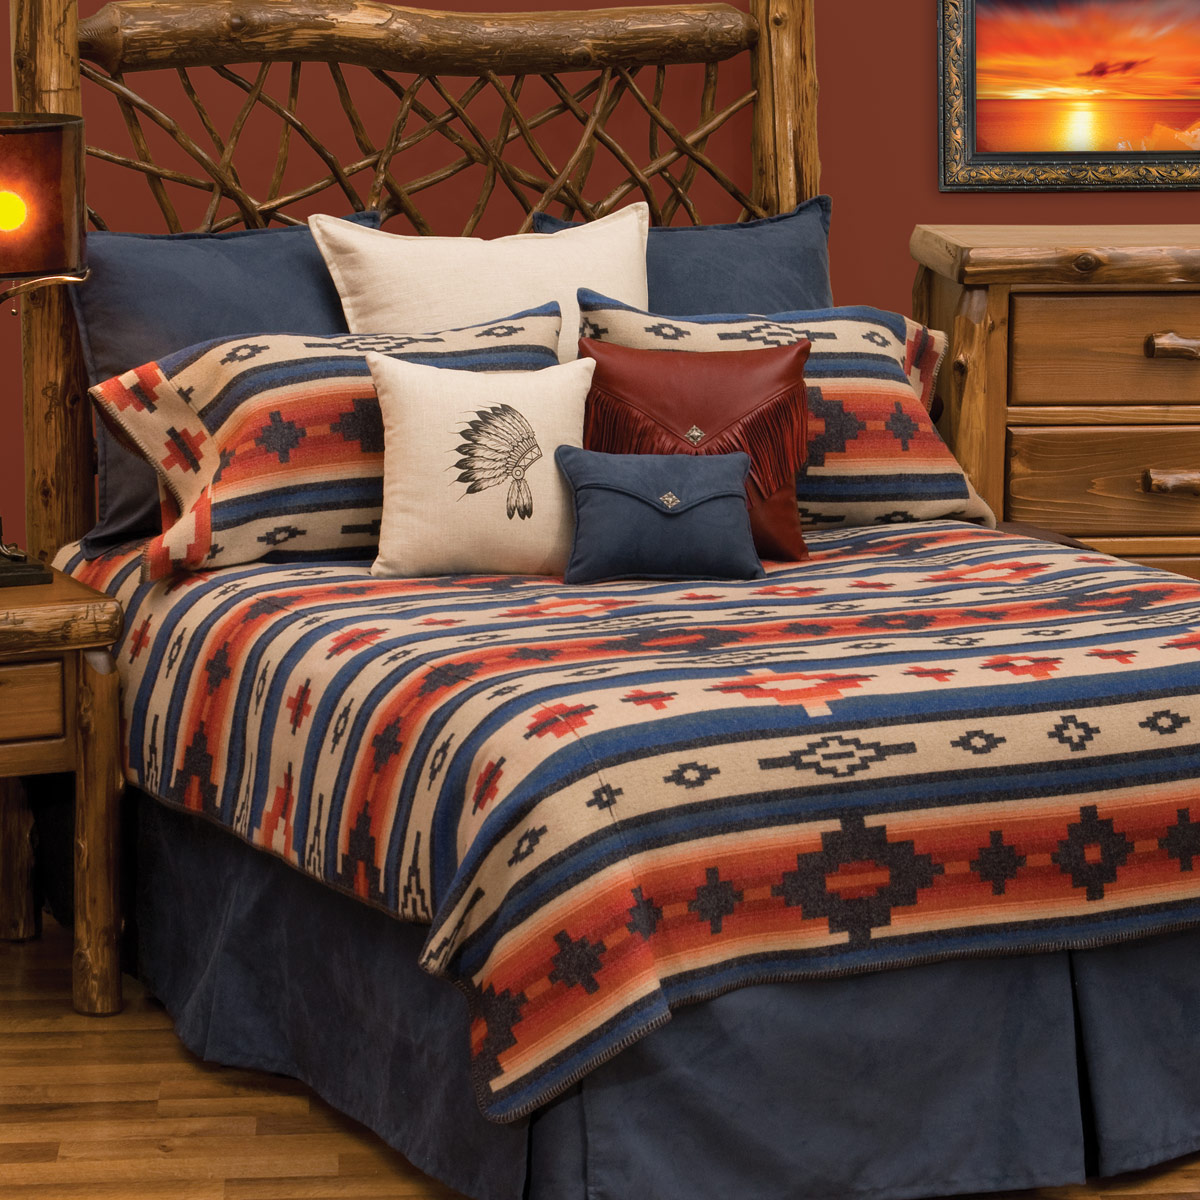 Black Forest Decor Redrock canyon deluxe bed set - full